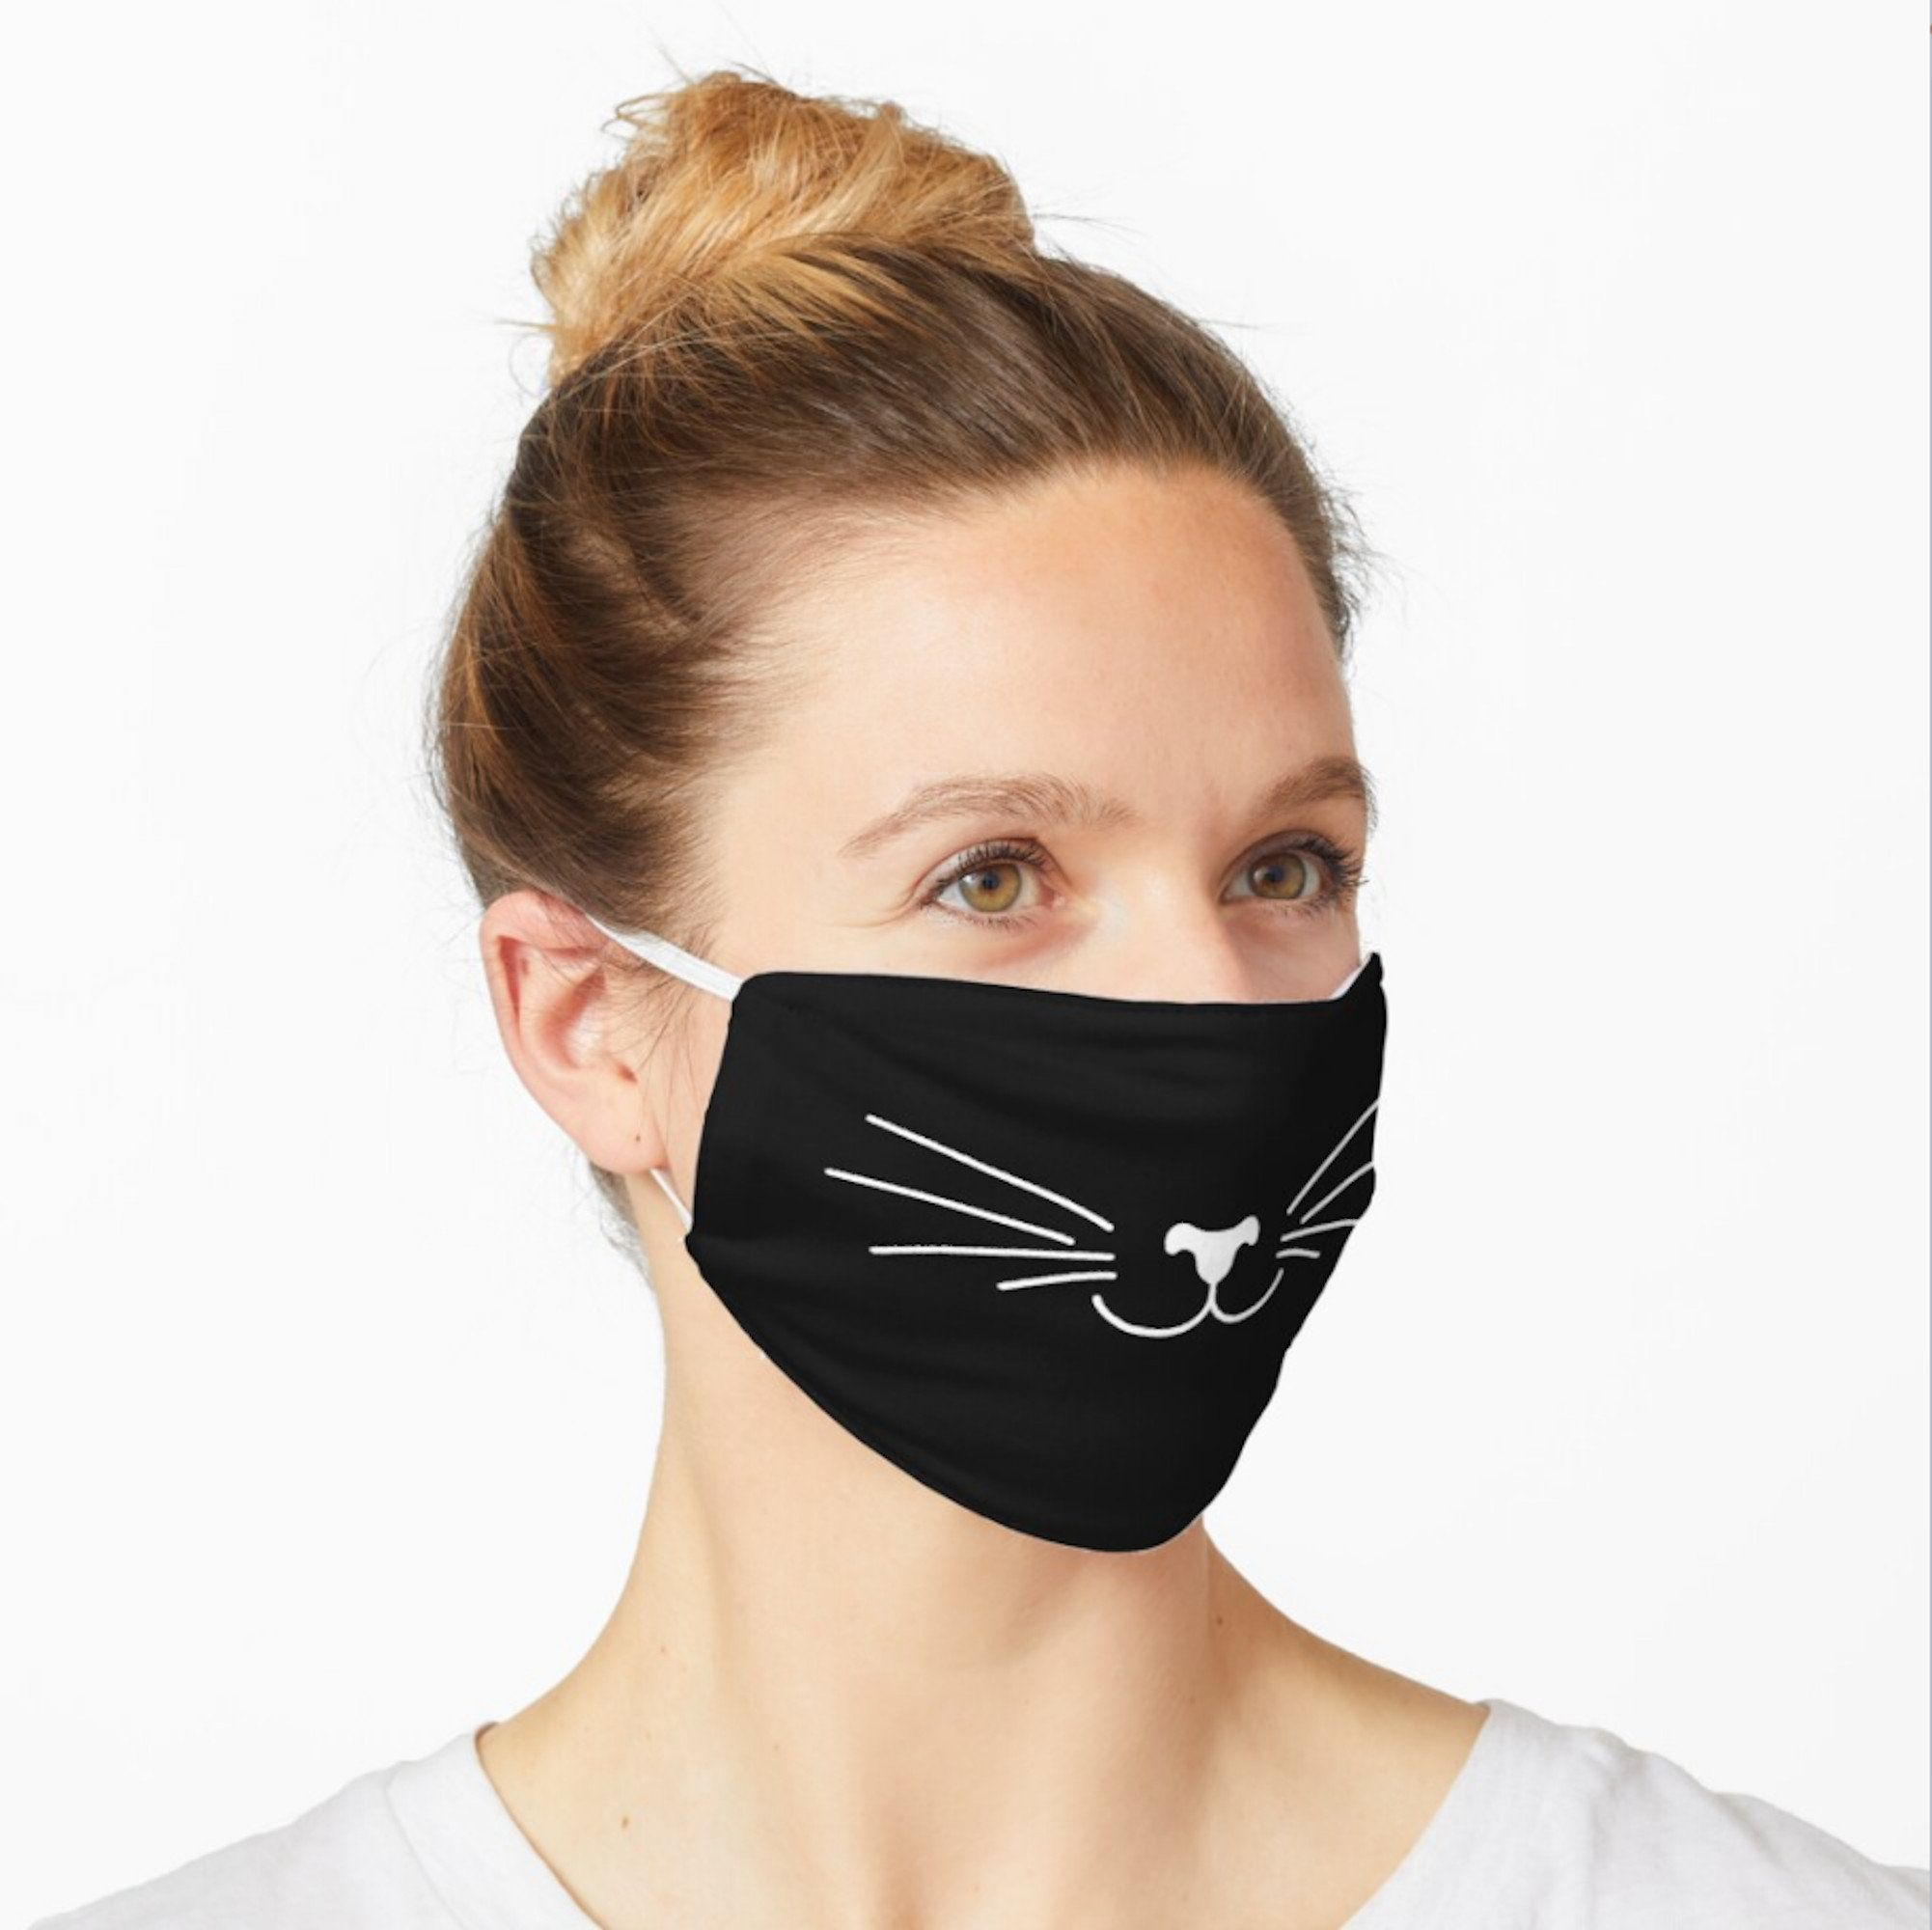 Cute Cat Face Protection Mask Washable Reusable Handmade In Eu Animal Face Mask Cover Comfortable Face Mask Unisex Black Mask In 2020 Cat Face Mask Animal Face Mask Funny Face Mask